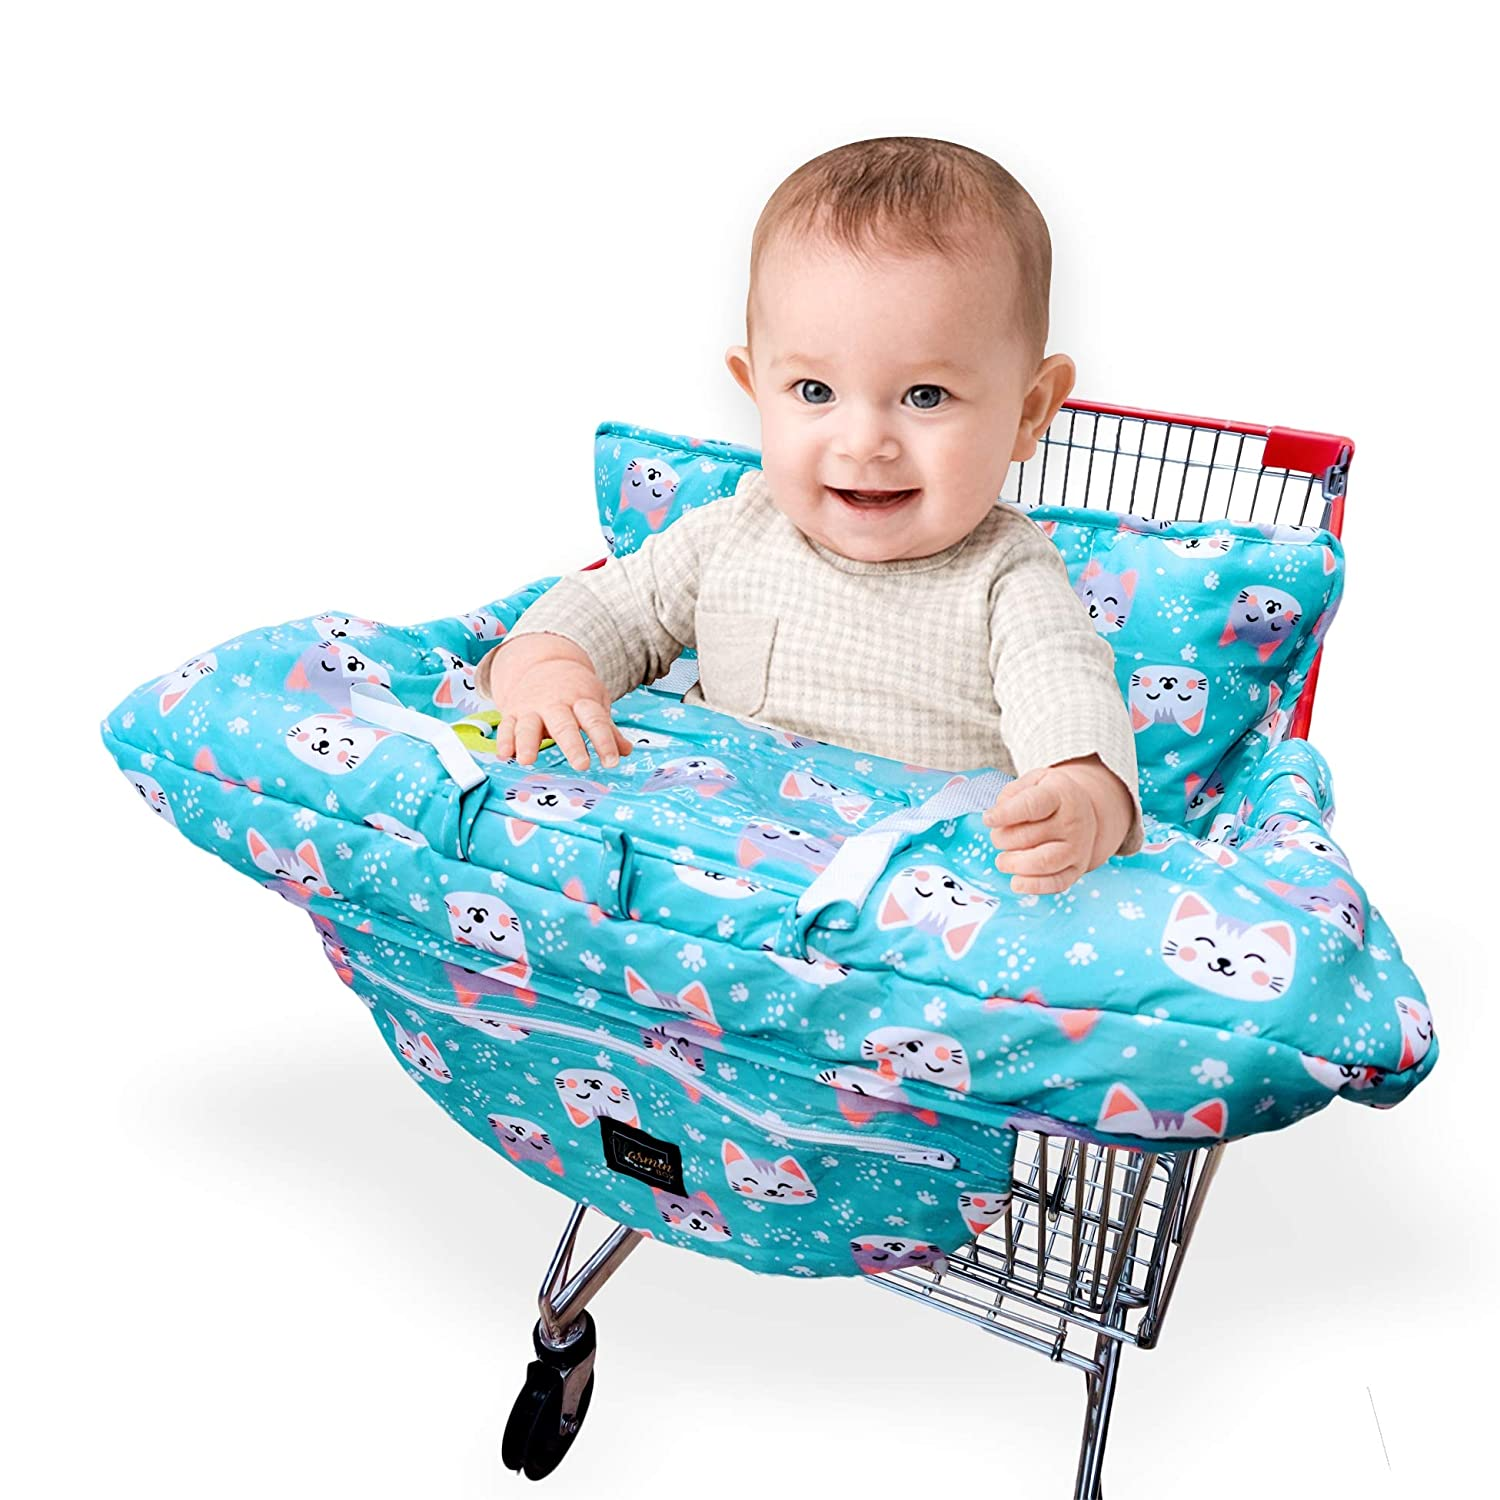 Grocery Cart Cover For Baby Shopping Portable Infant Dining Seat Toddler Safety